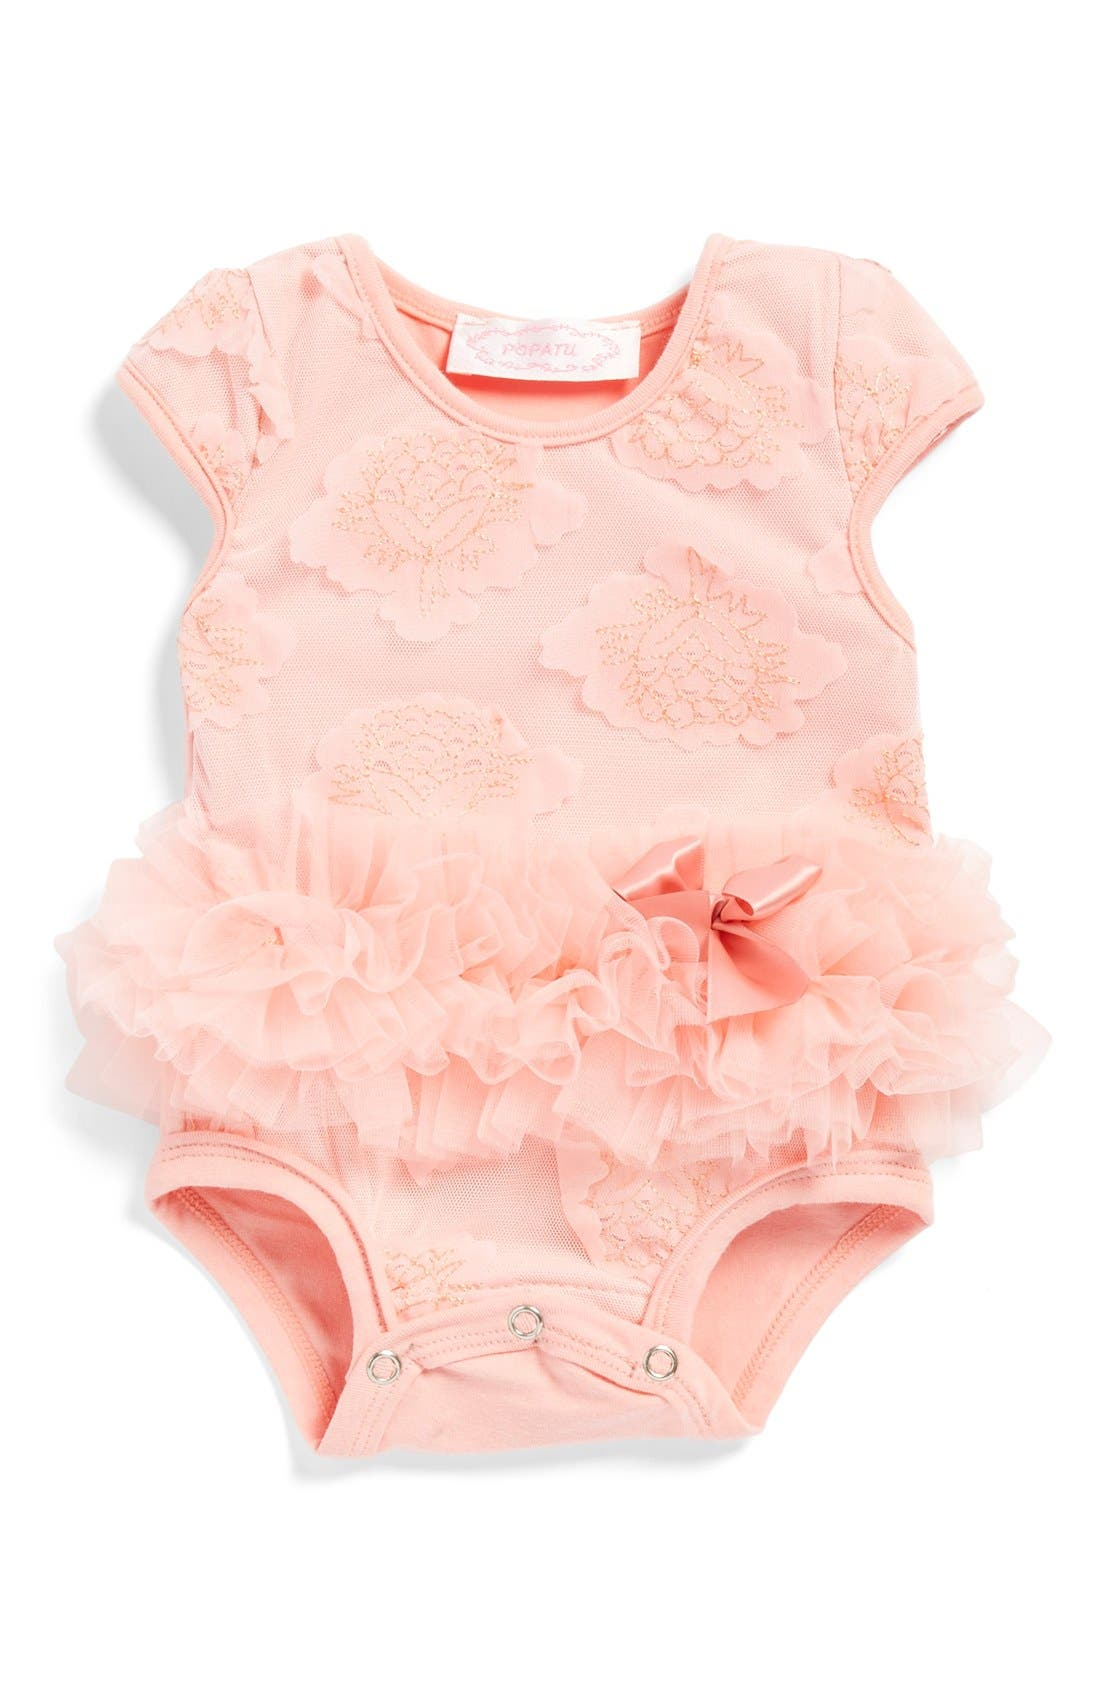 POPATU, Flower Tutu Bodysuit, Main thumbnail 1, color, PEACH